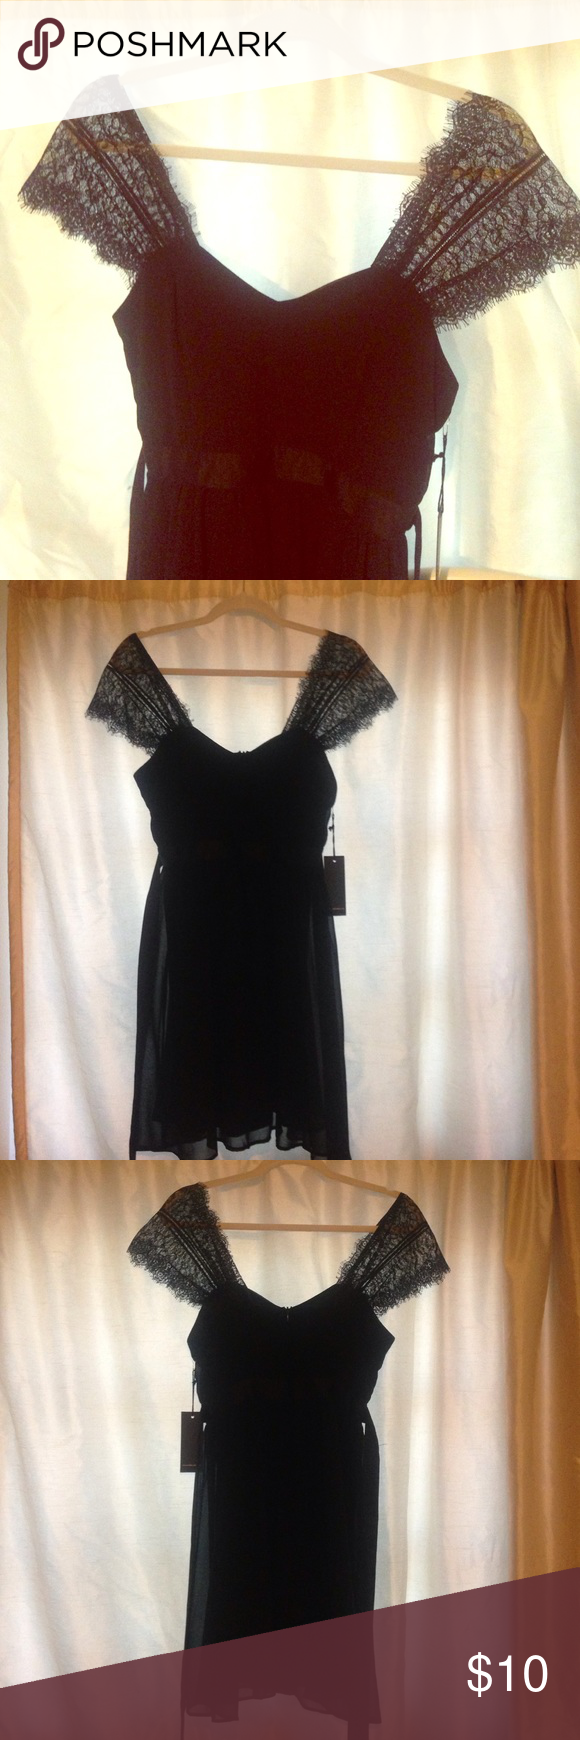 Forever 21 Lace Capsleeve A-Line Dress 💕 This dress is brand new, never worn. Has lace for the sleeves and ribbons on the side to cinch the waist. Hits right above the knee. Great for a formal dinner! Forever 21 Dresses Midi